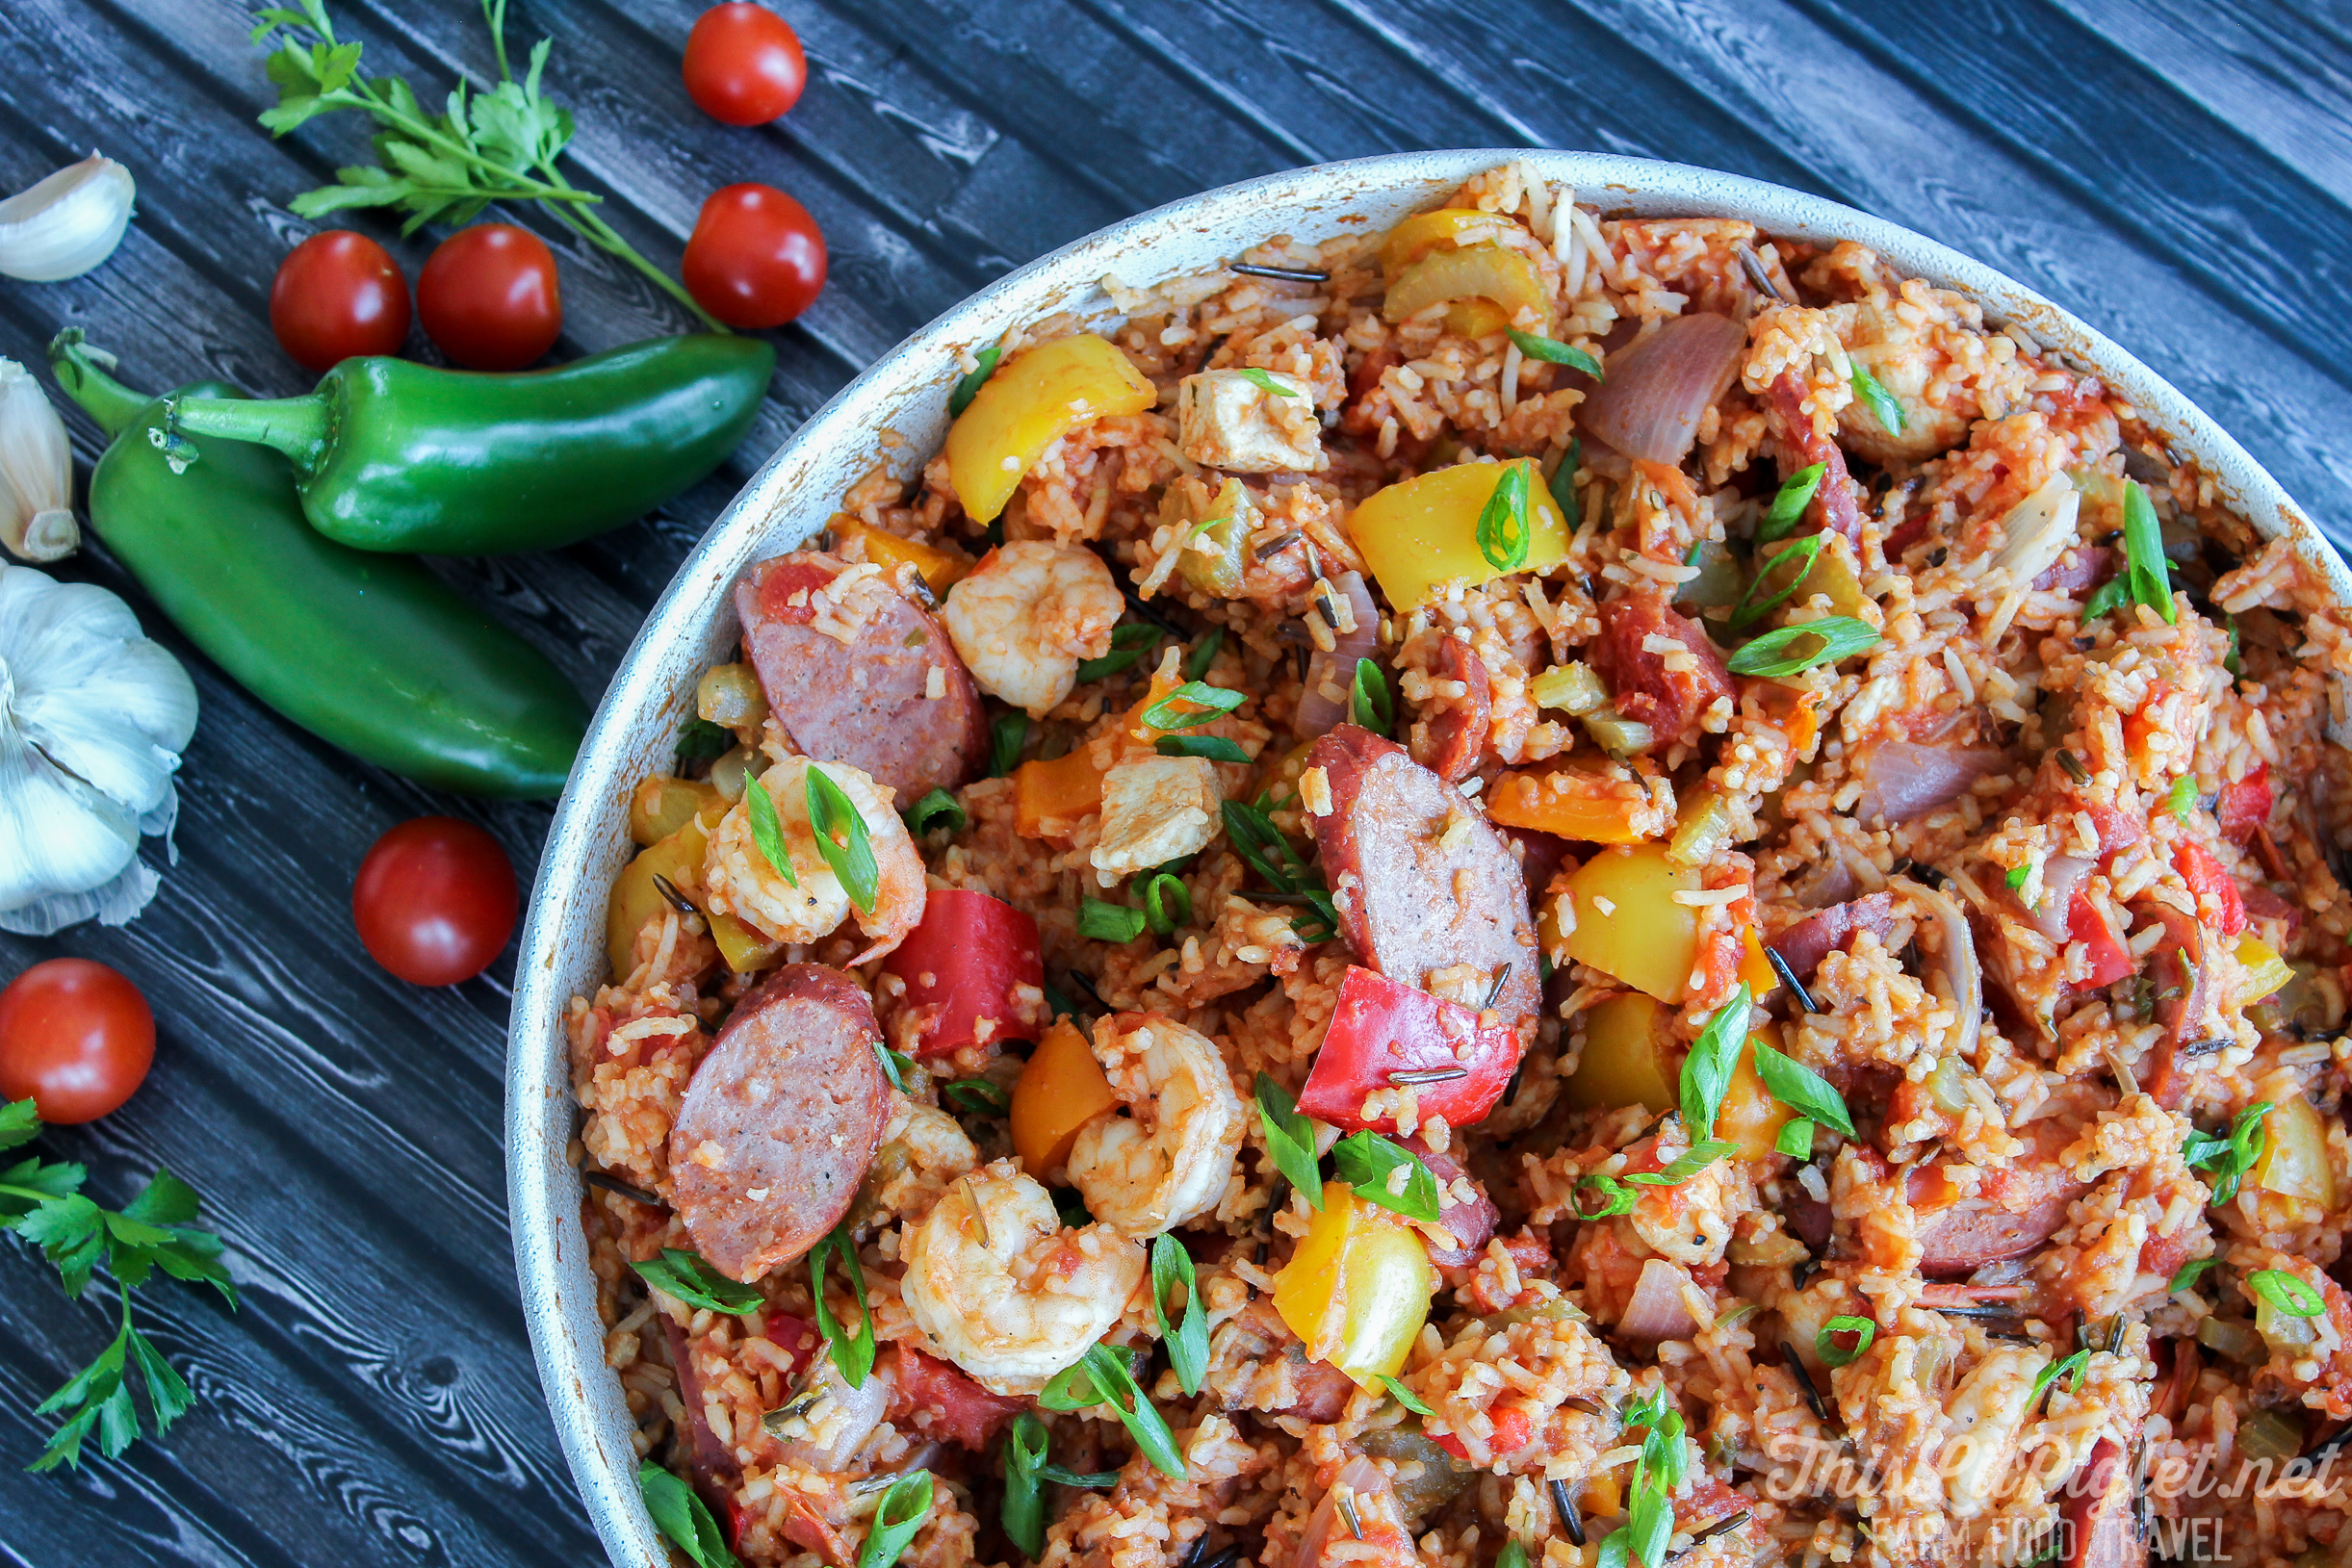 One Pot Meals: Jambalaya Recipe with Chicken, Sausage, Shrimp and Wild Rice // via thislilpiglet.net